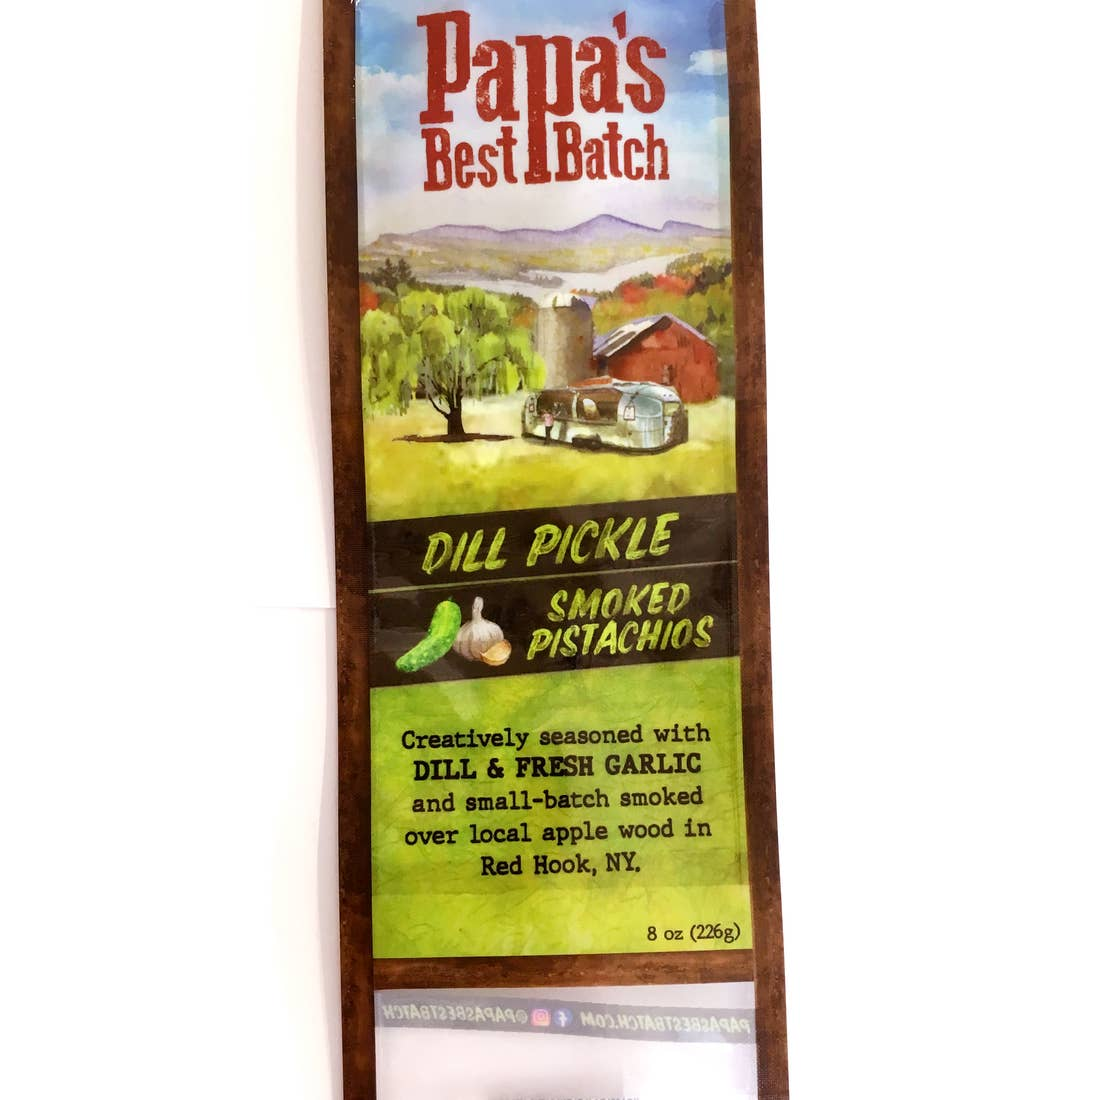 Papa's Best-Smoked Dill Pickle Pistachio